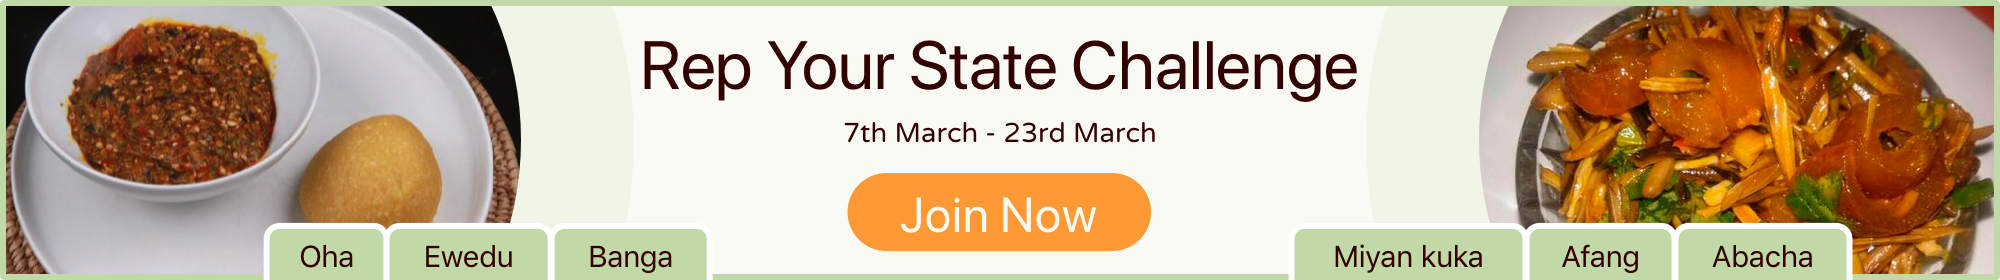 REP YOUR STATE CHALLENGE